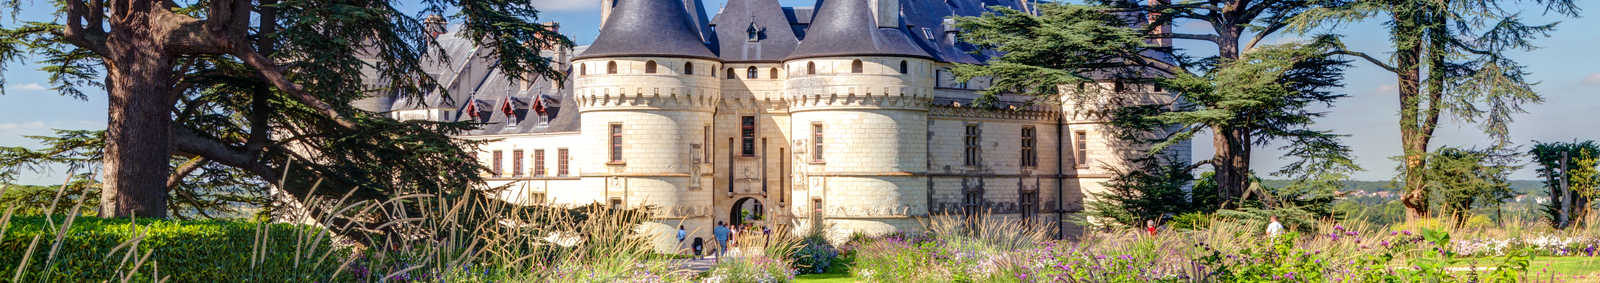 chateau_de_chaumont_with_flowers_and_gardens